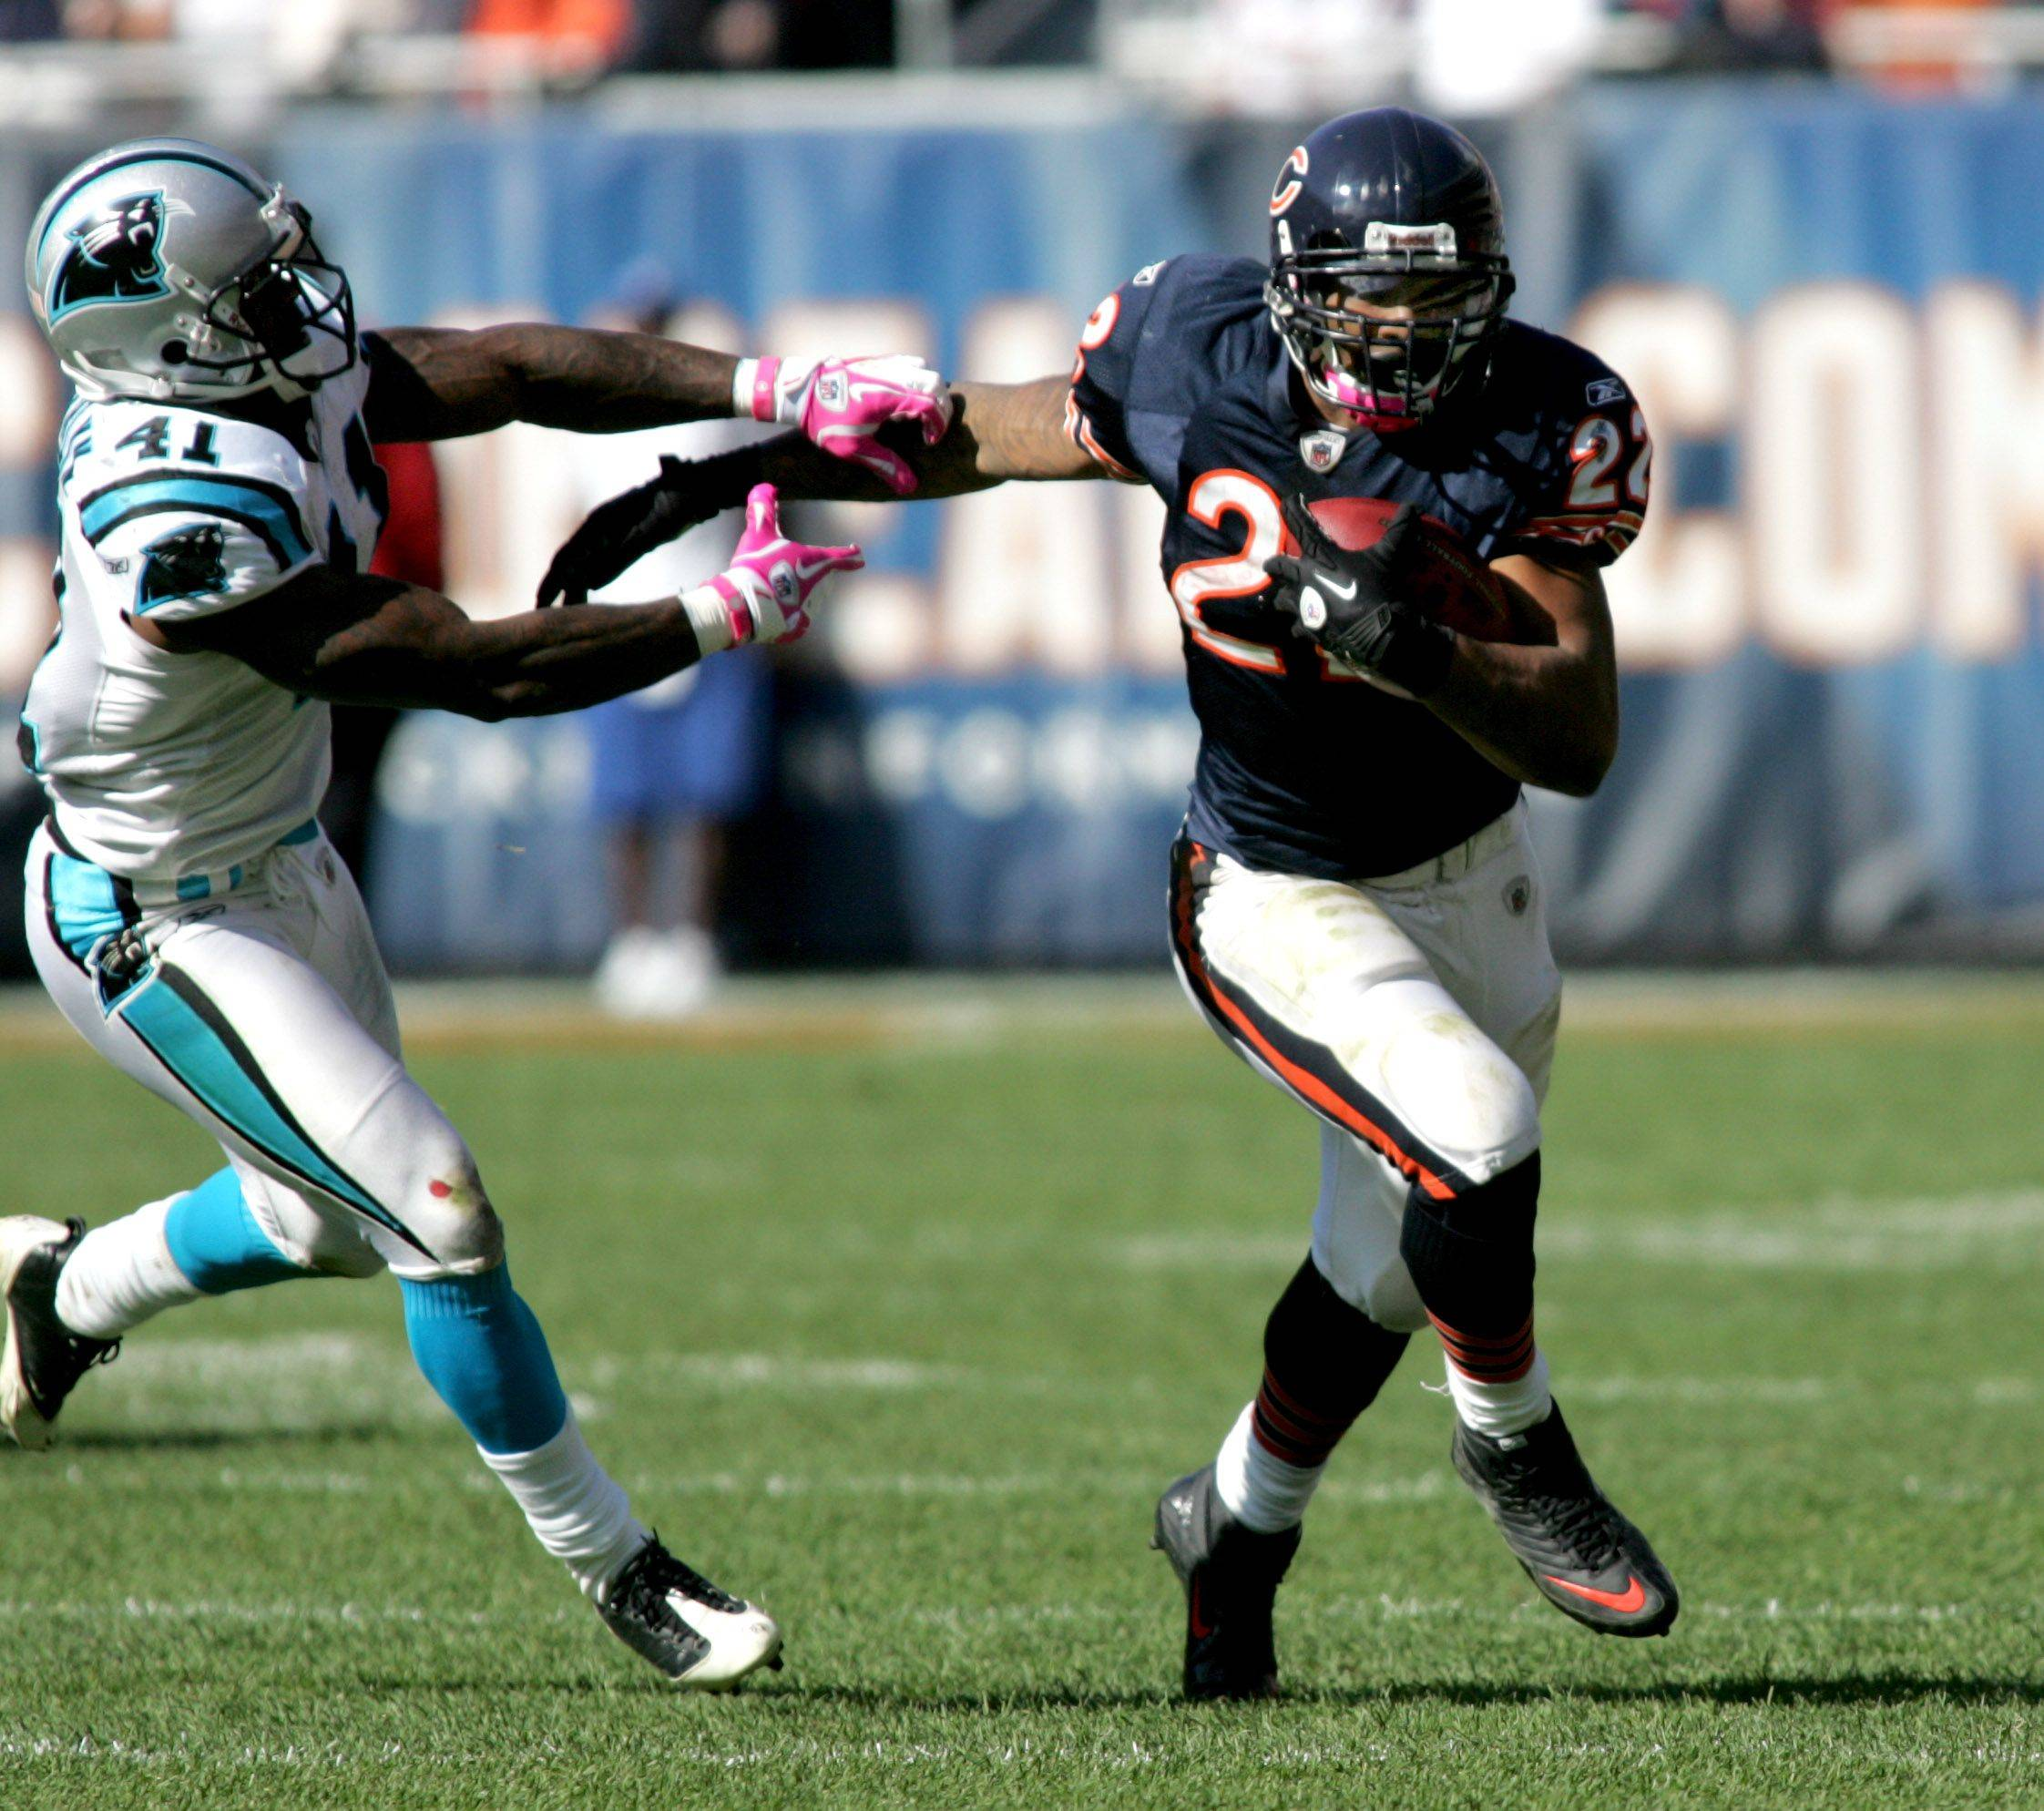 Matt Forte of the Chicago Bears with the ball as Captain Munnerlyn of Carolina Panthers moves in for a tackle.